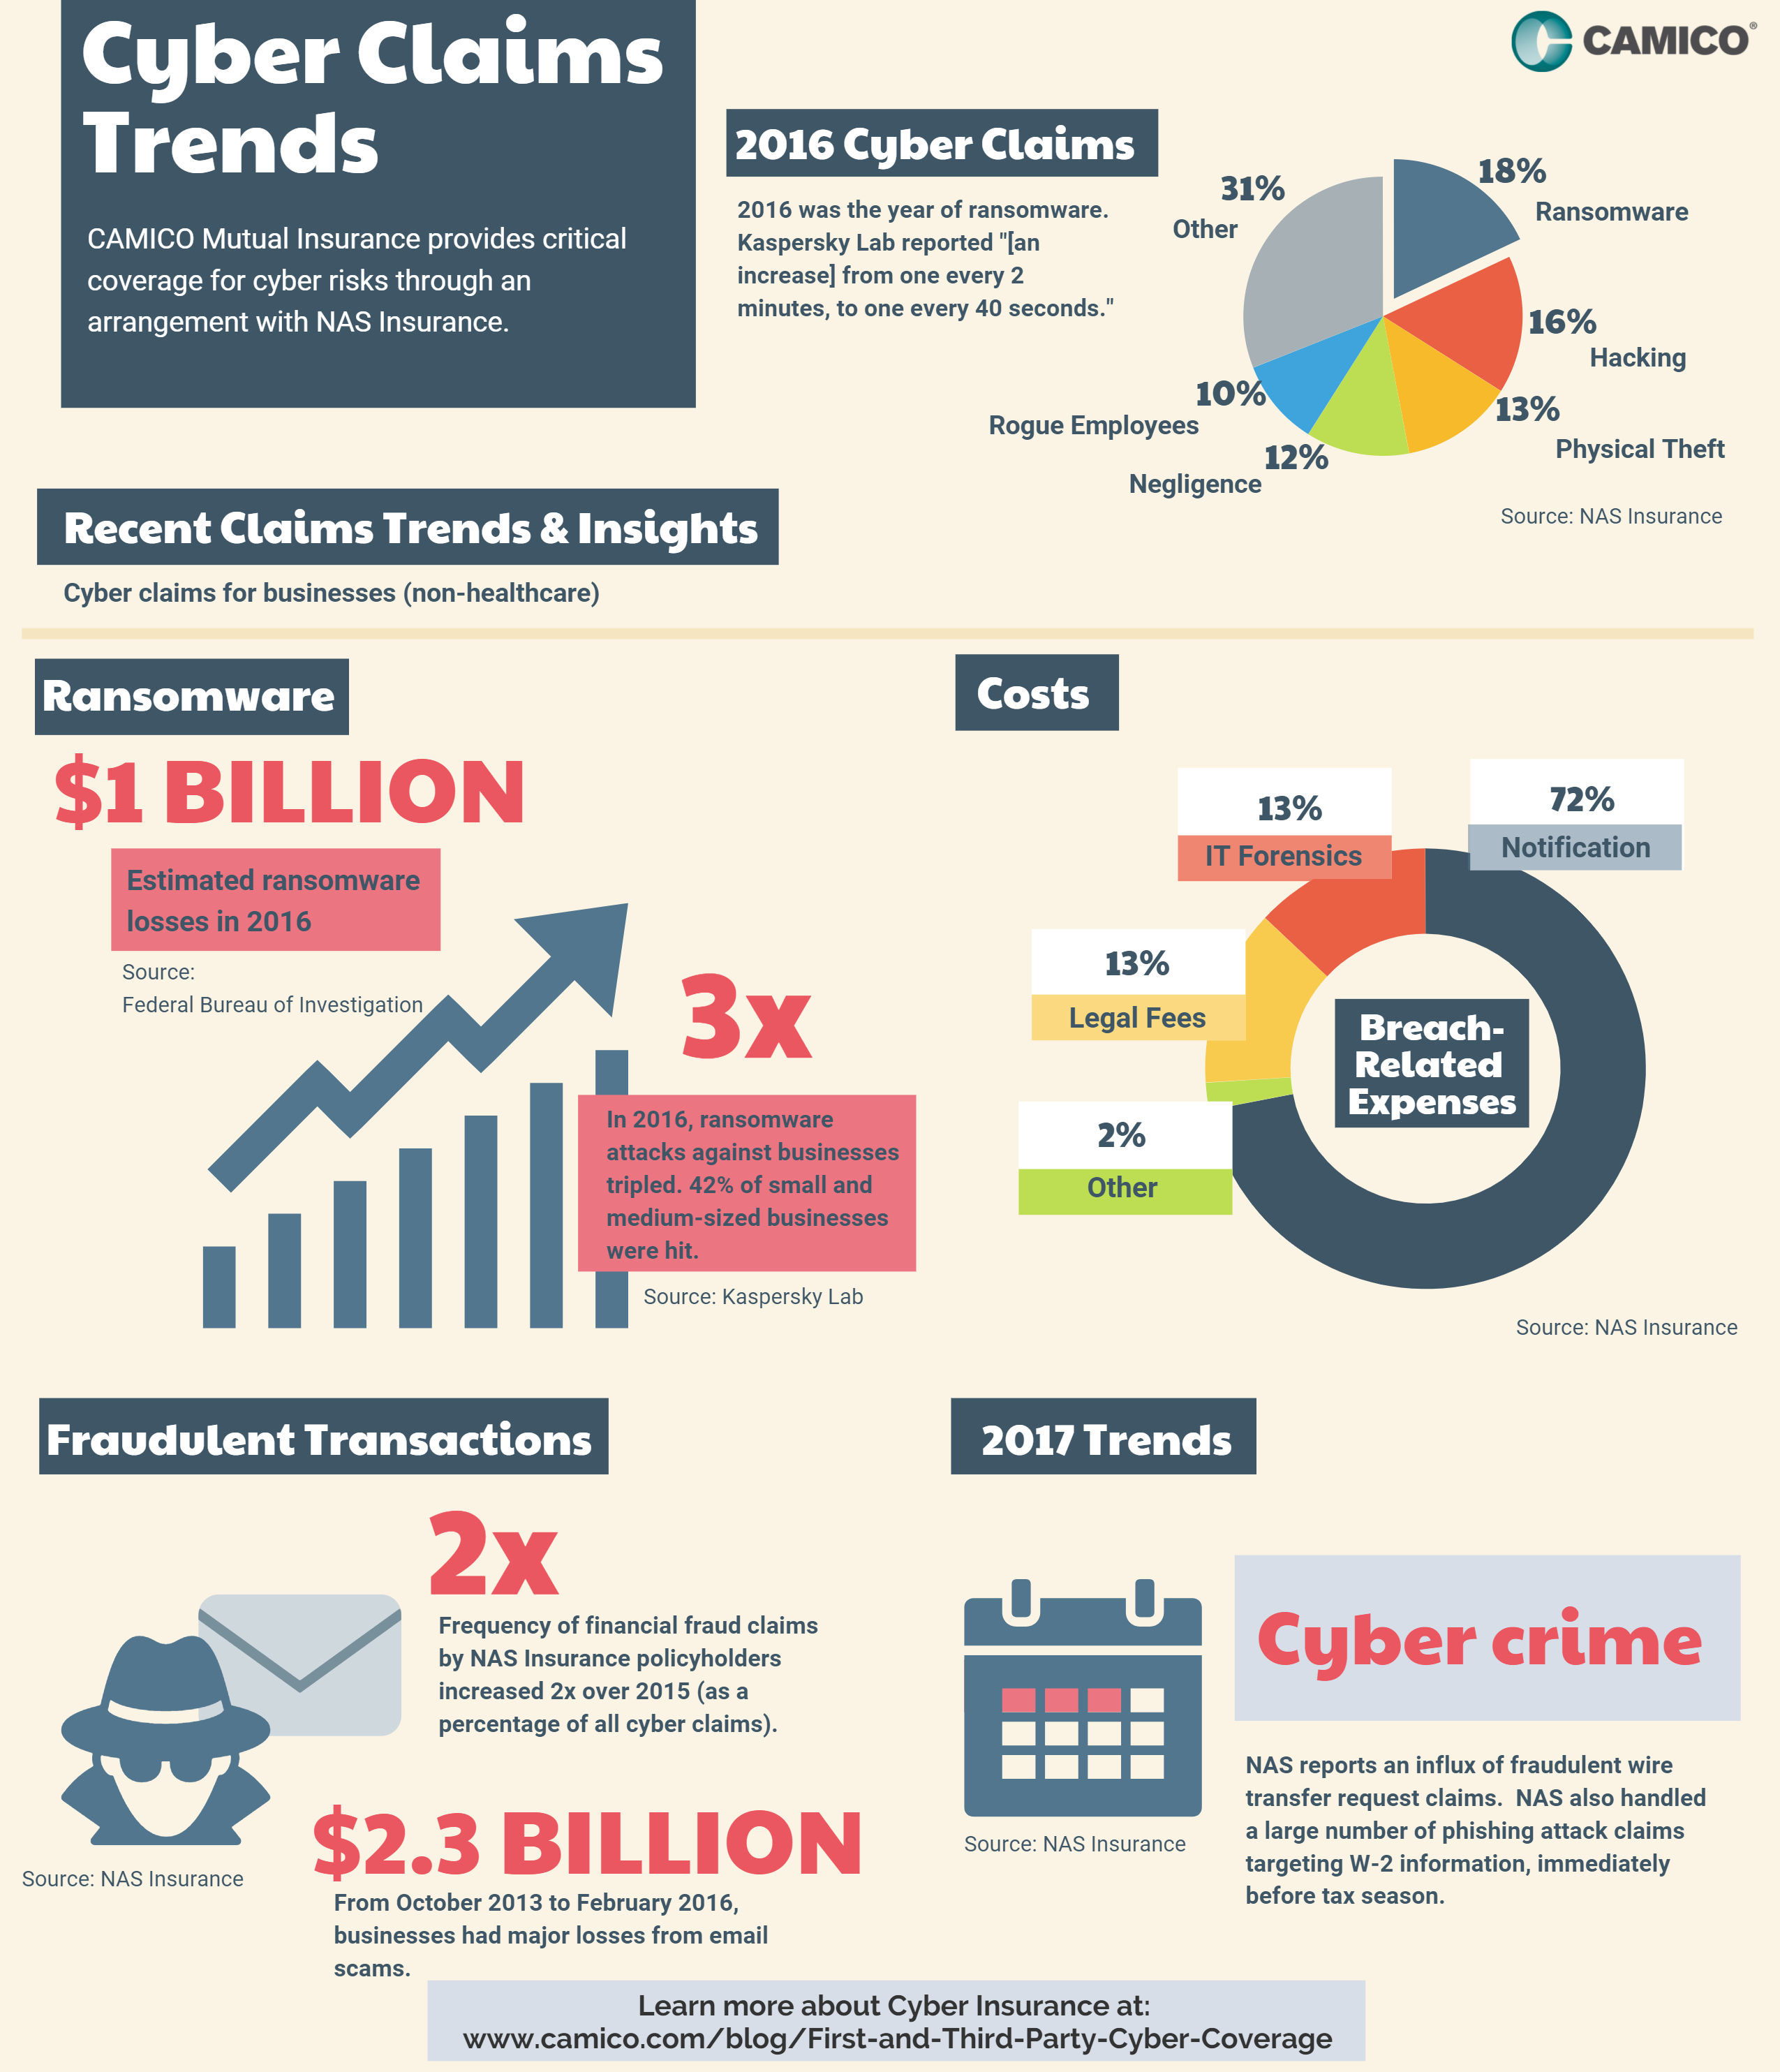 Cyber Claims Trends for 2016